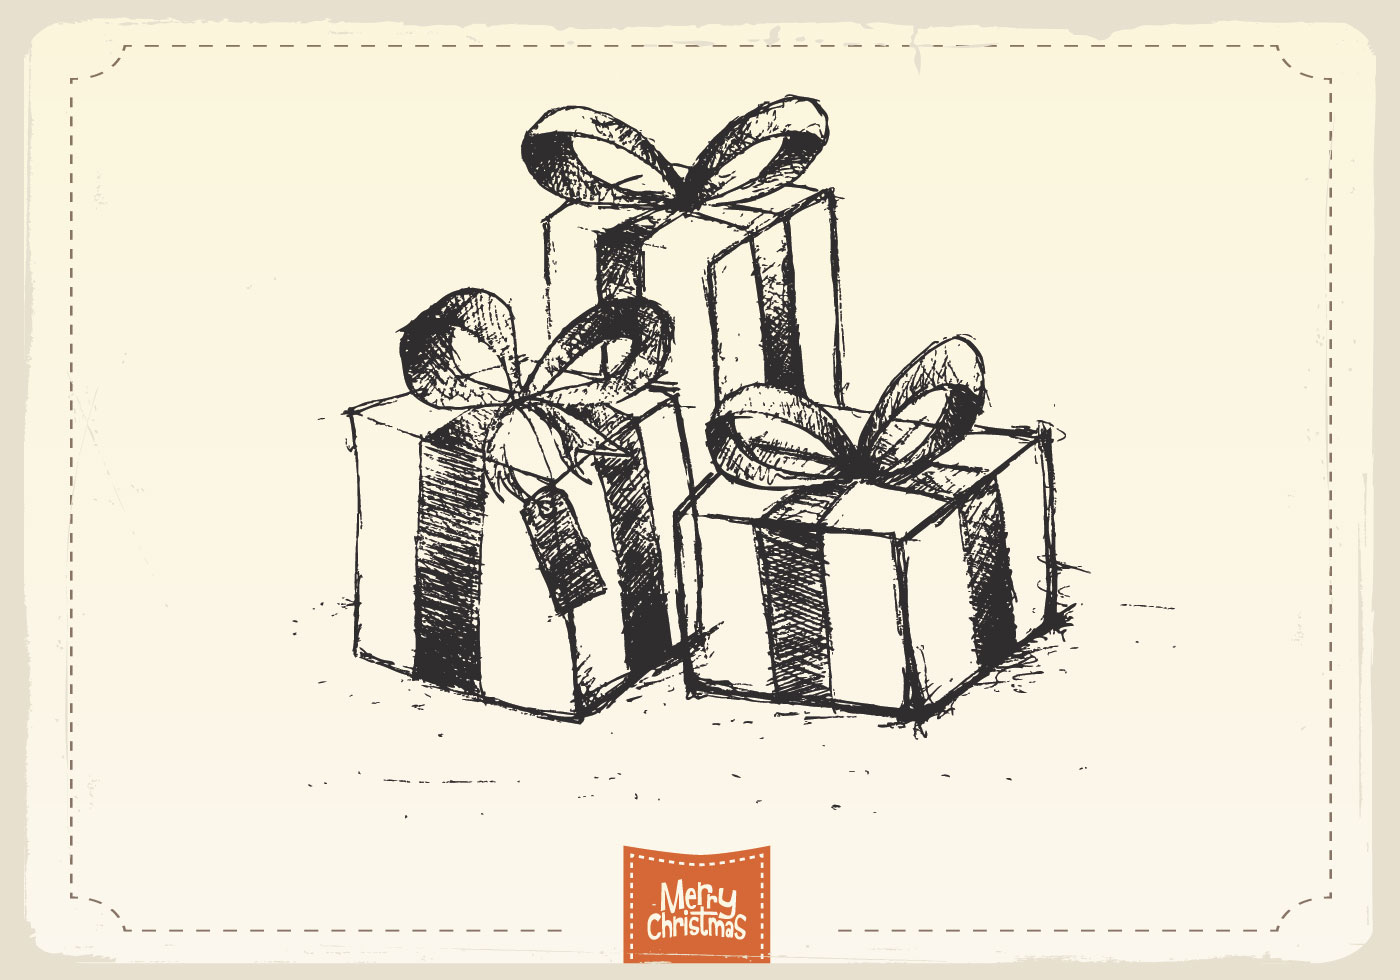 Christmas Gifts Sketch Vector - Download Free Vector Art Stock Graphics U0026 Images